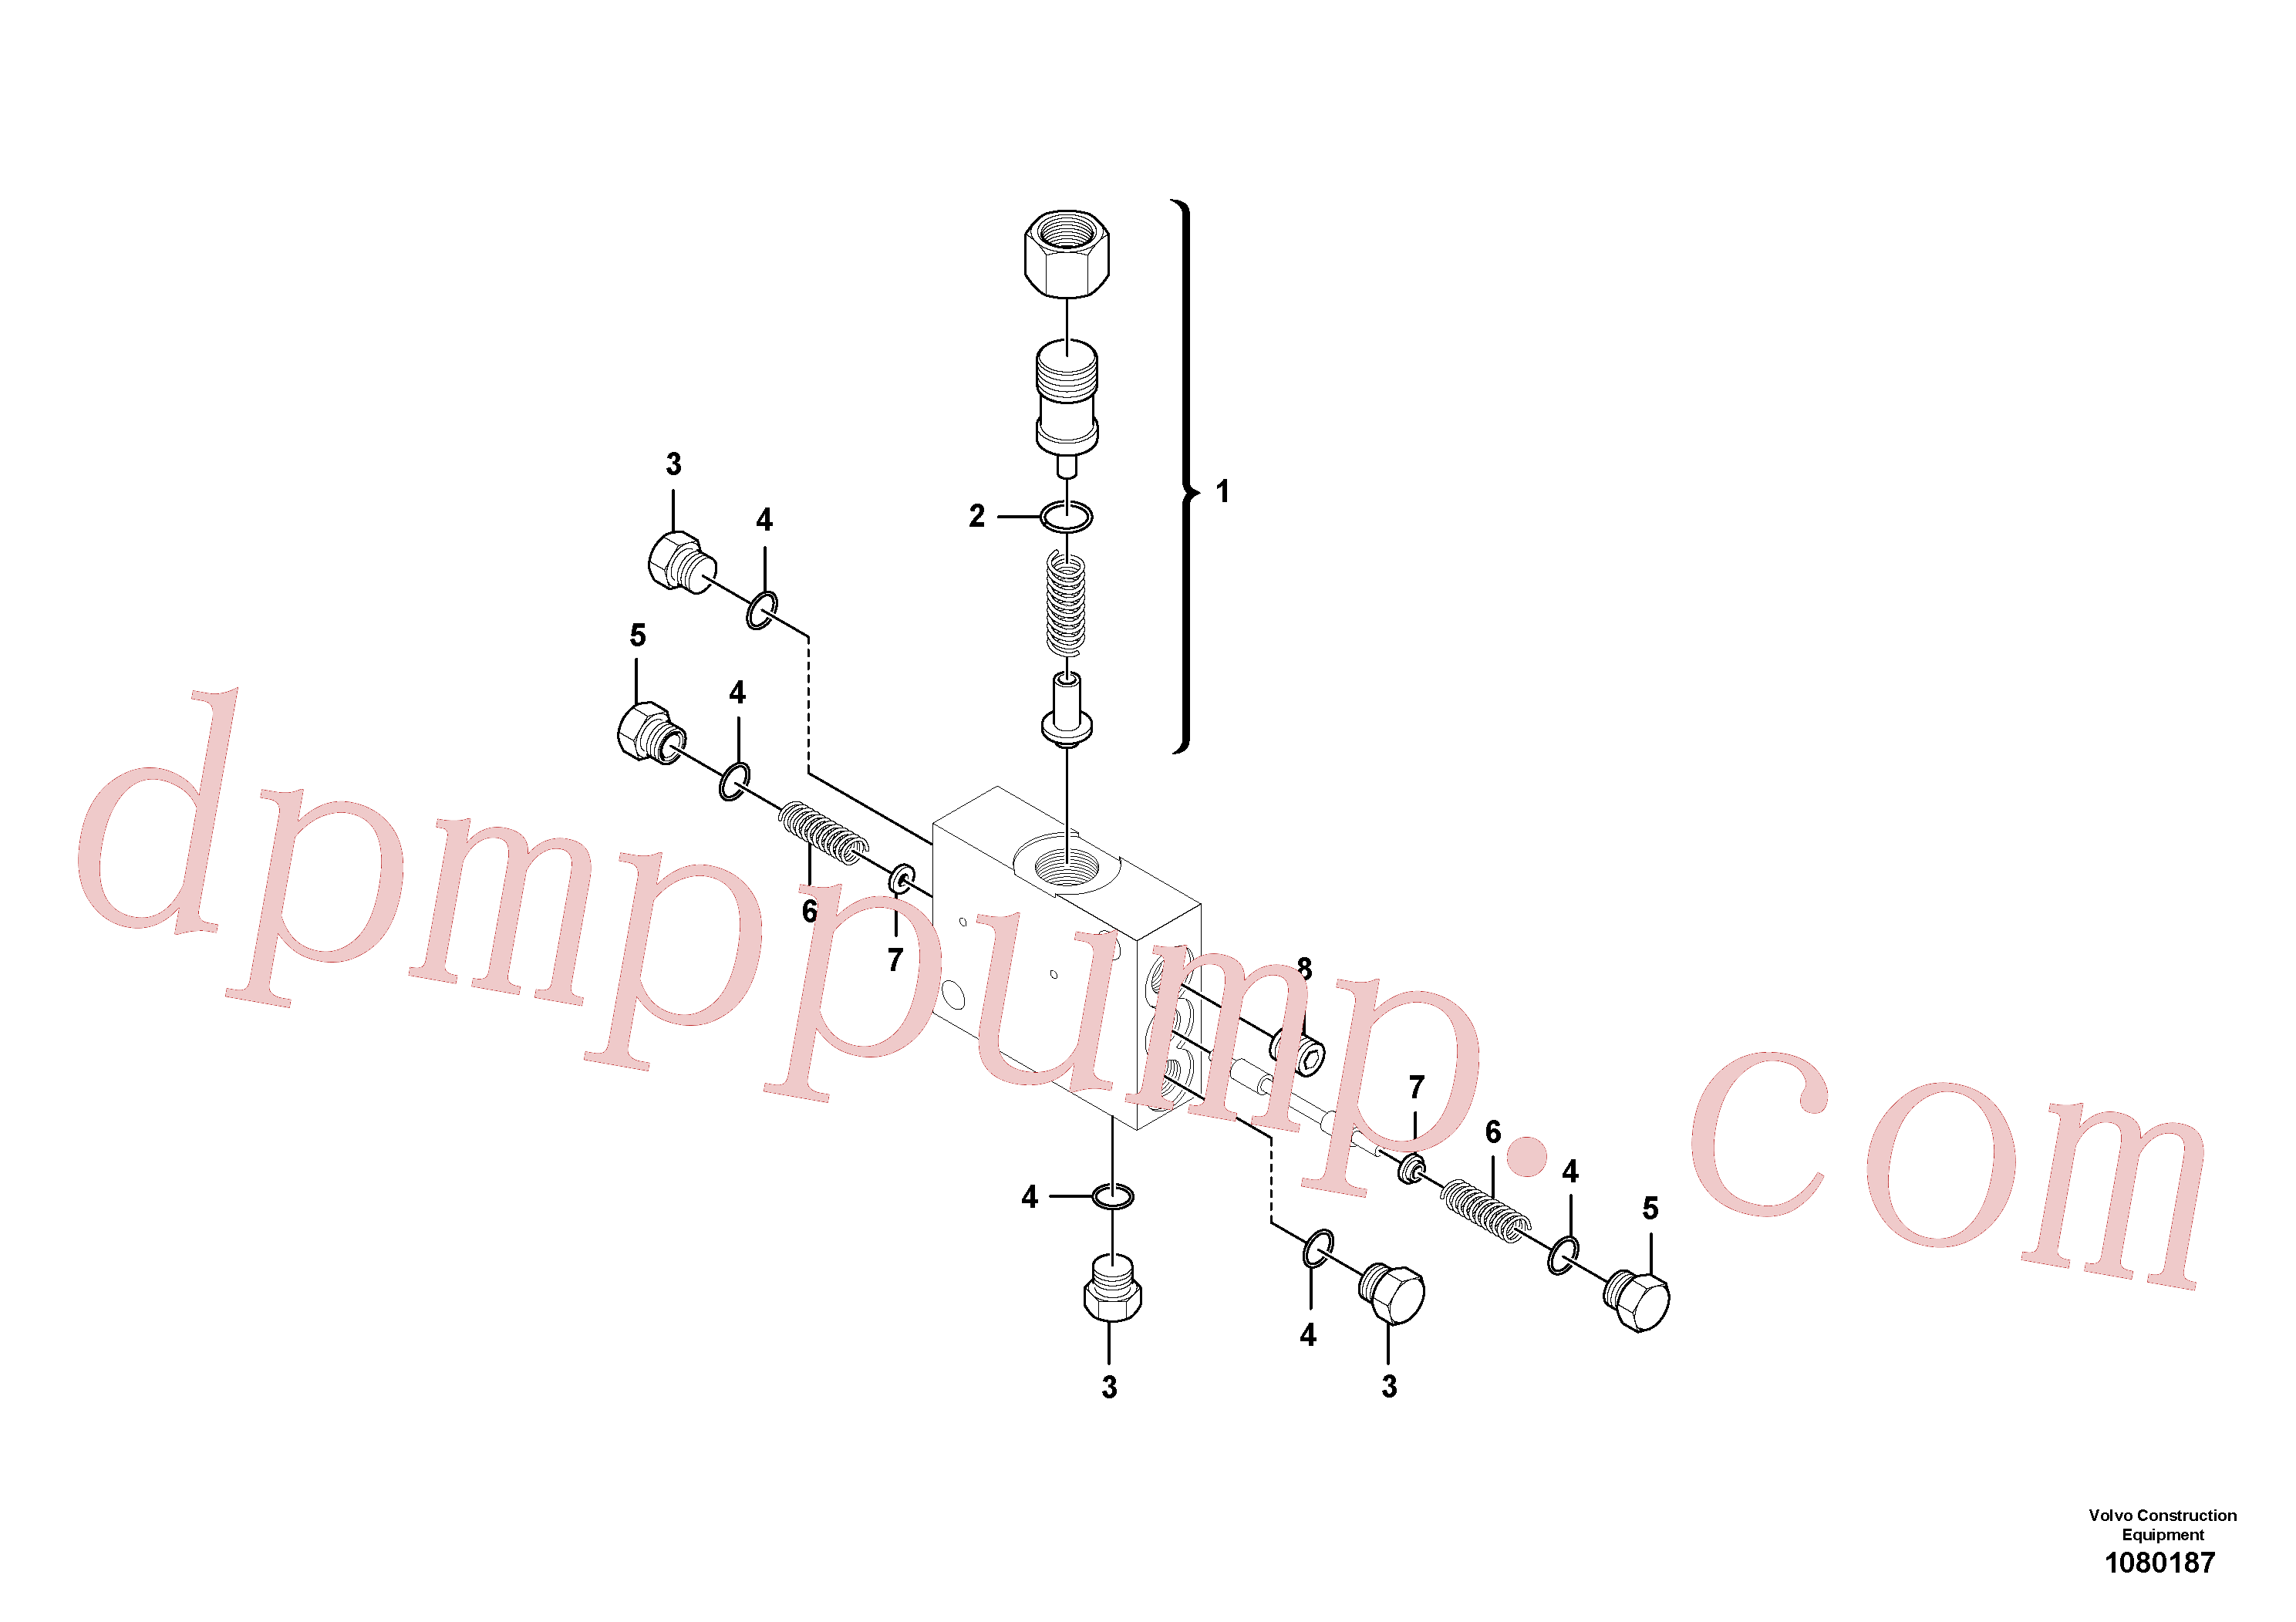 RM59698811 for Volvo Loop Flushing Valve Assembly(1080187 assembly)